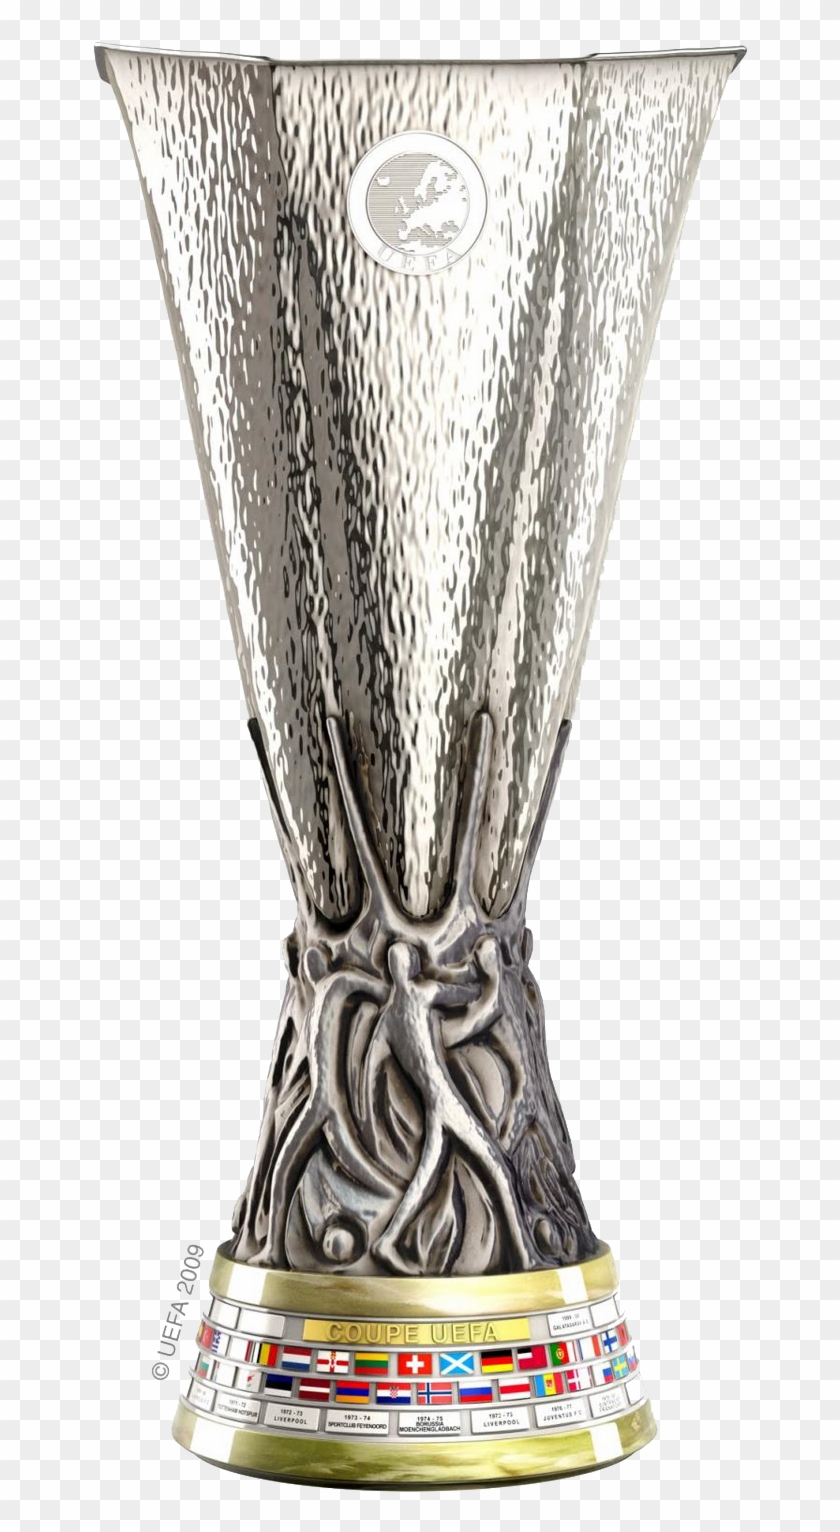 Champions League Trophy Png.